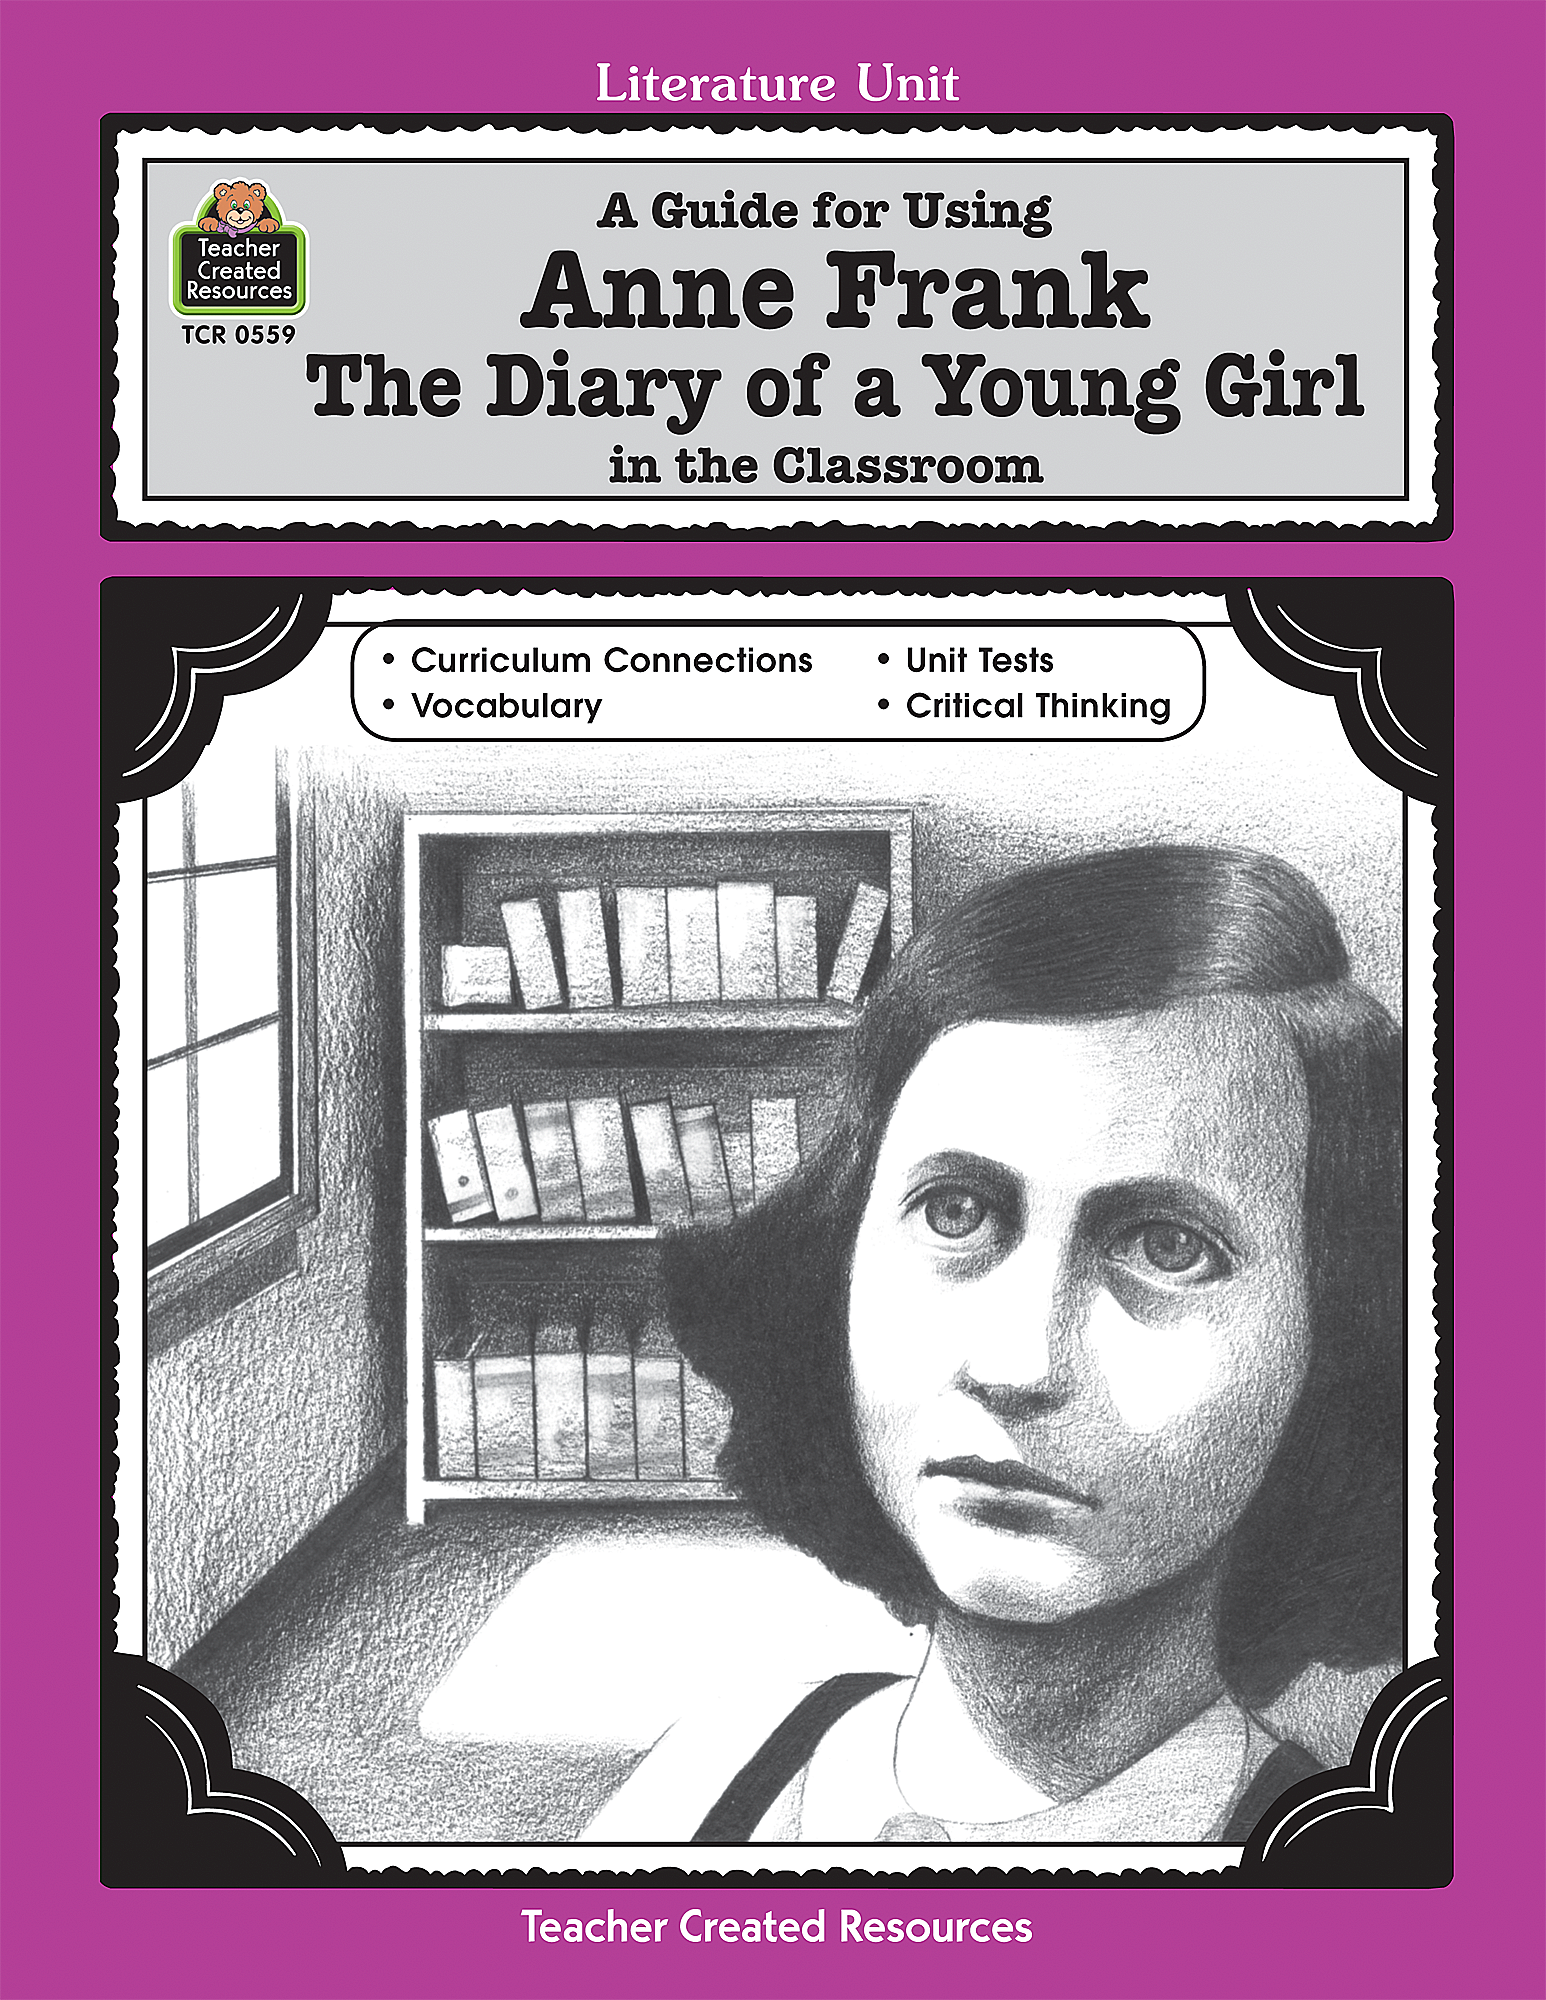 a guide for using anne frank the diary of a young girl in the classroom tcr0559 teacher. Black Bedroom Furniture Sets. Home Design Ideas